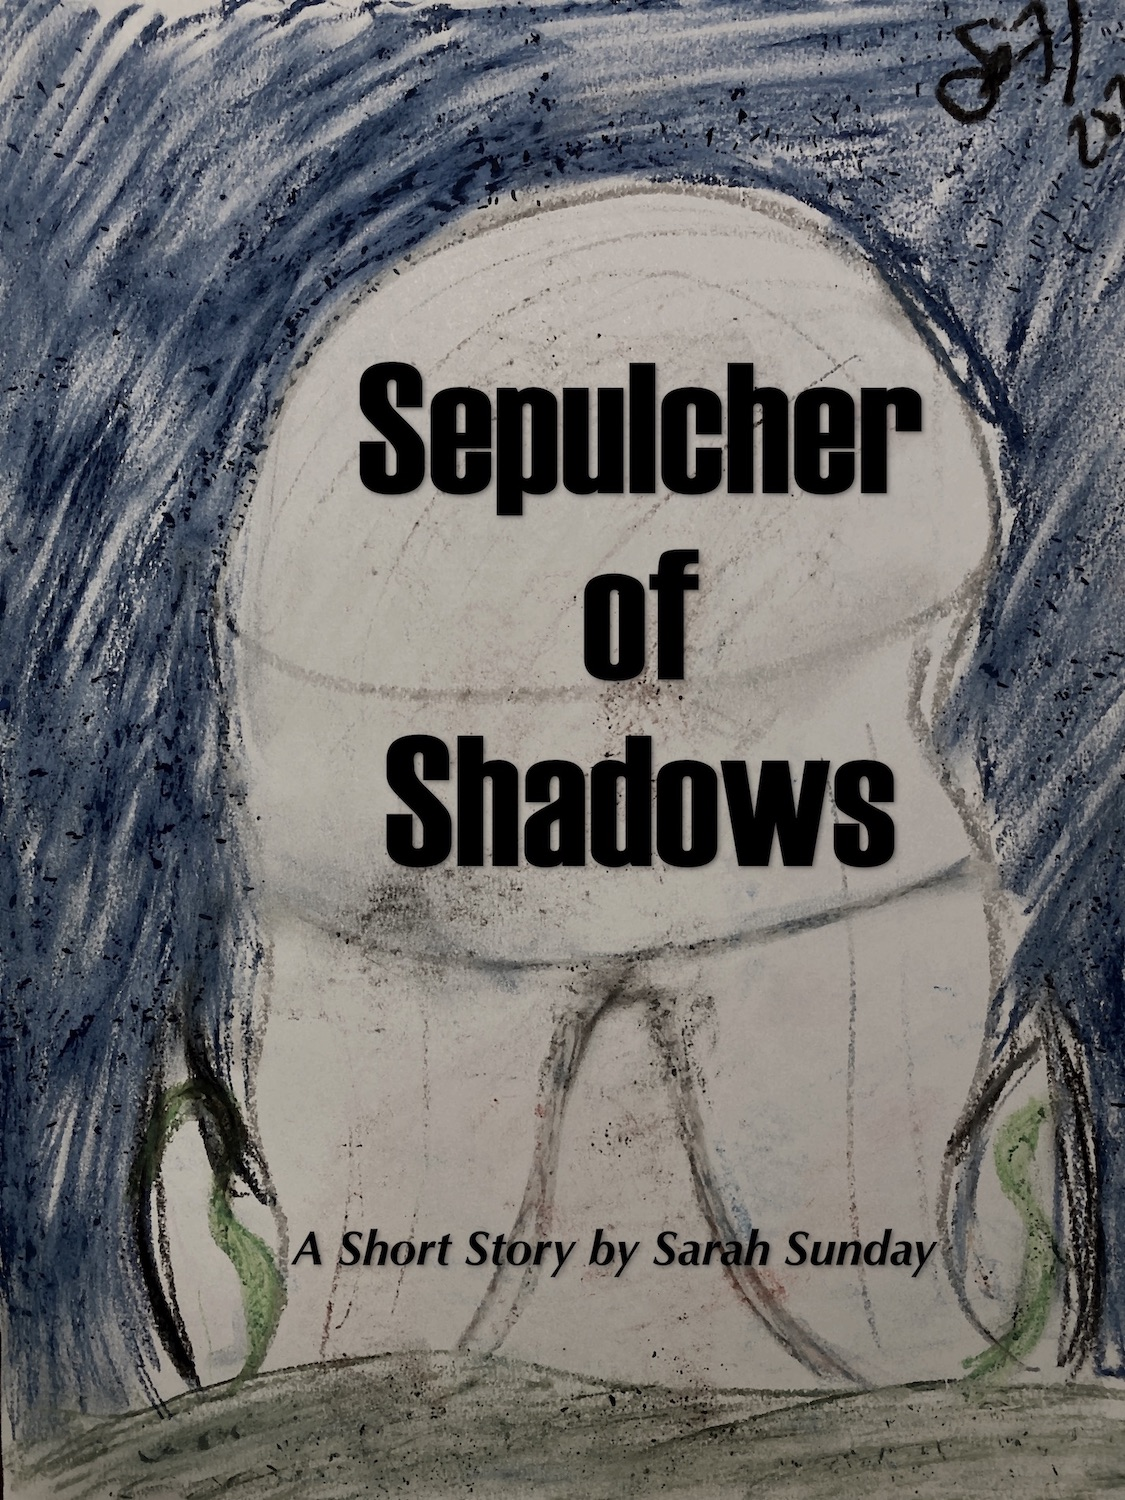 Sepulcher of Shadows: A Short Story following The Madness of Light